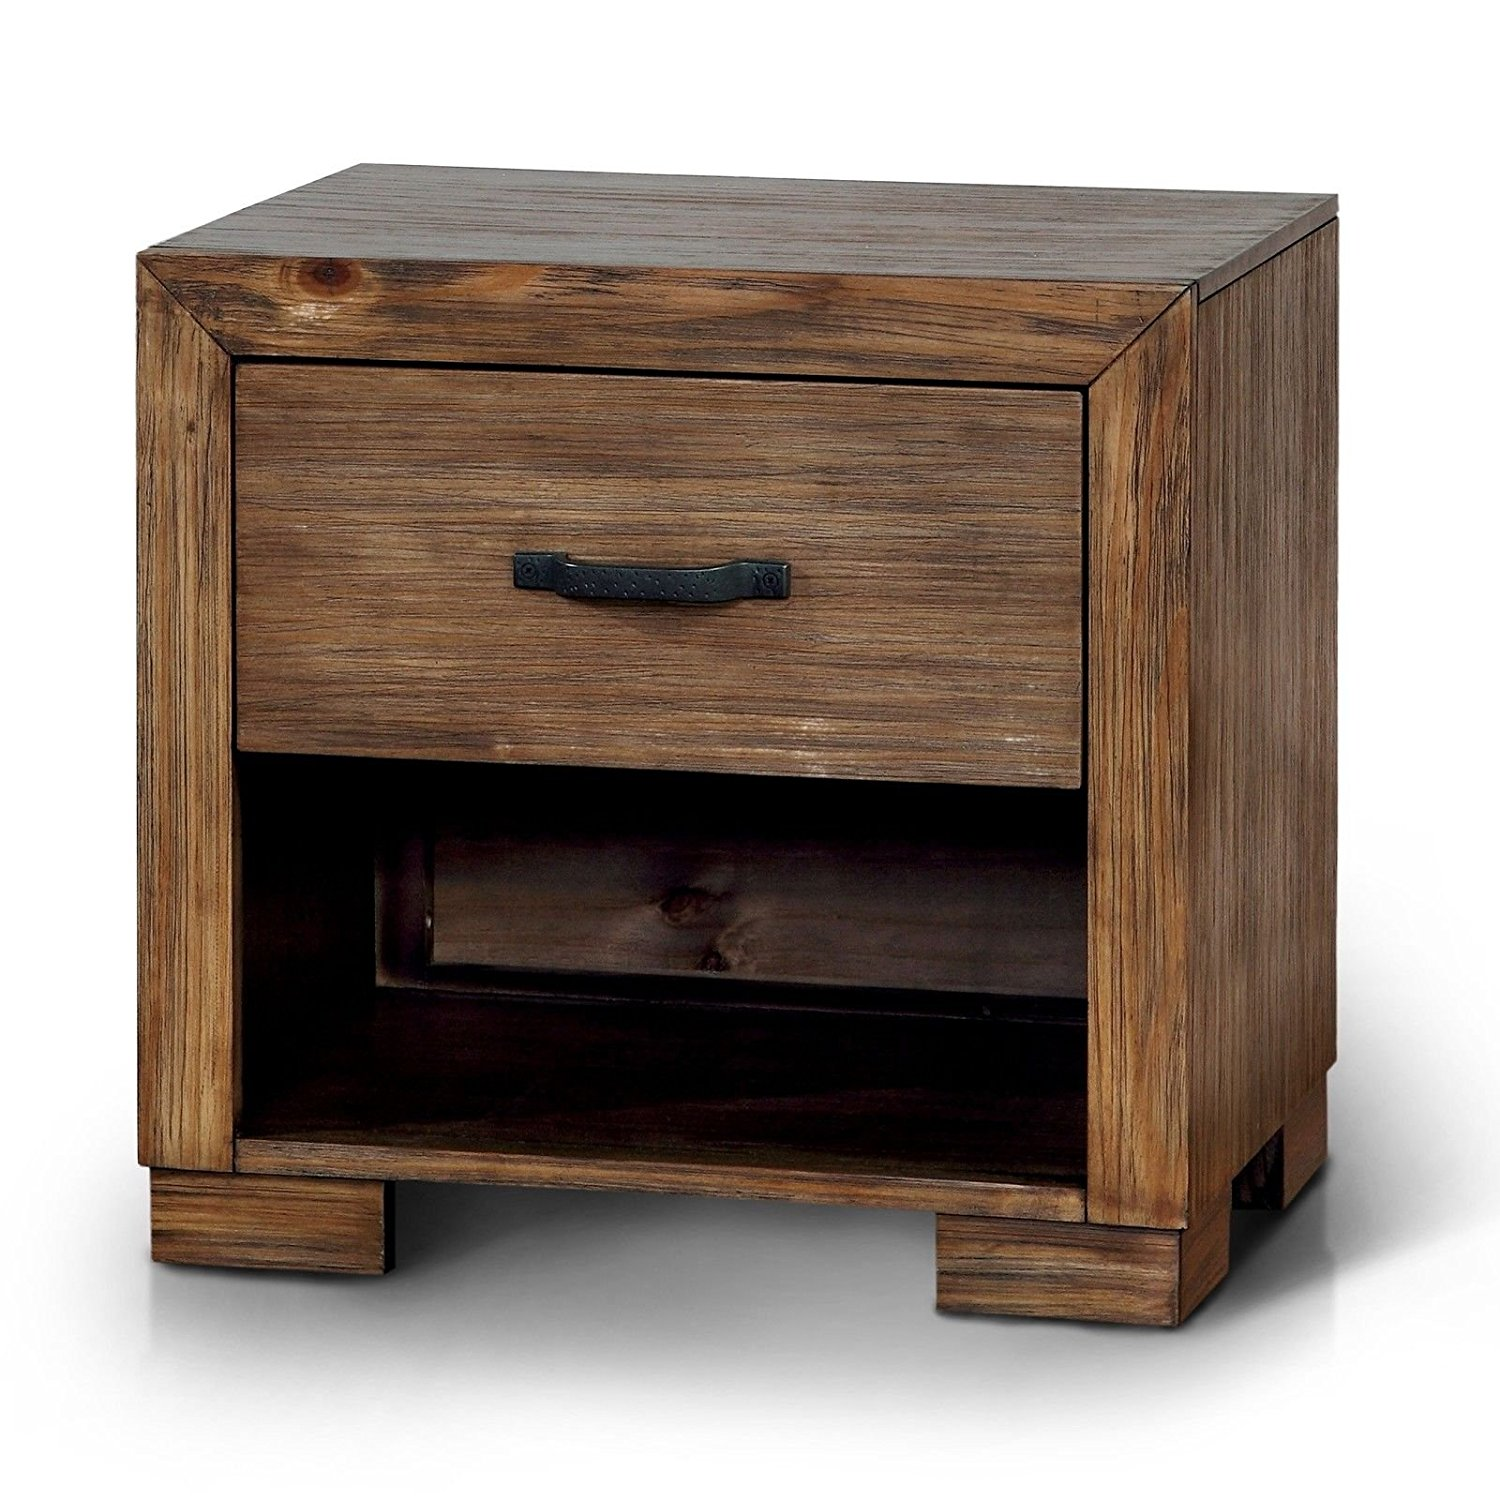 Reclaimed Pine Wood Finished Fully Assembled Single Lower Open Compartment Storage Single Storage Drawer with USB and Power Outlets Rectangular Bed Side Nightstand Includes Our Exclusive Ebook